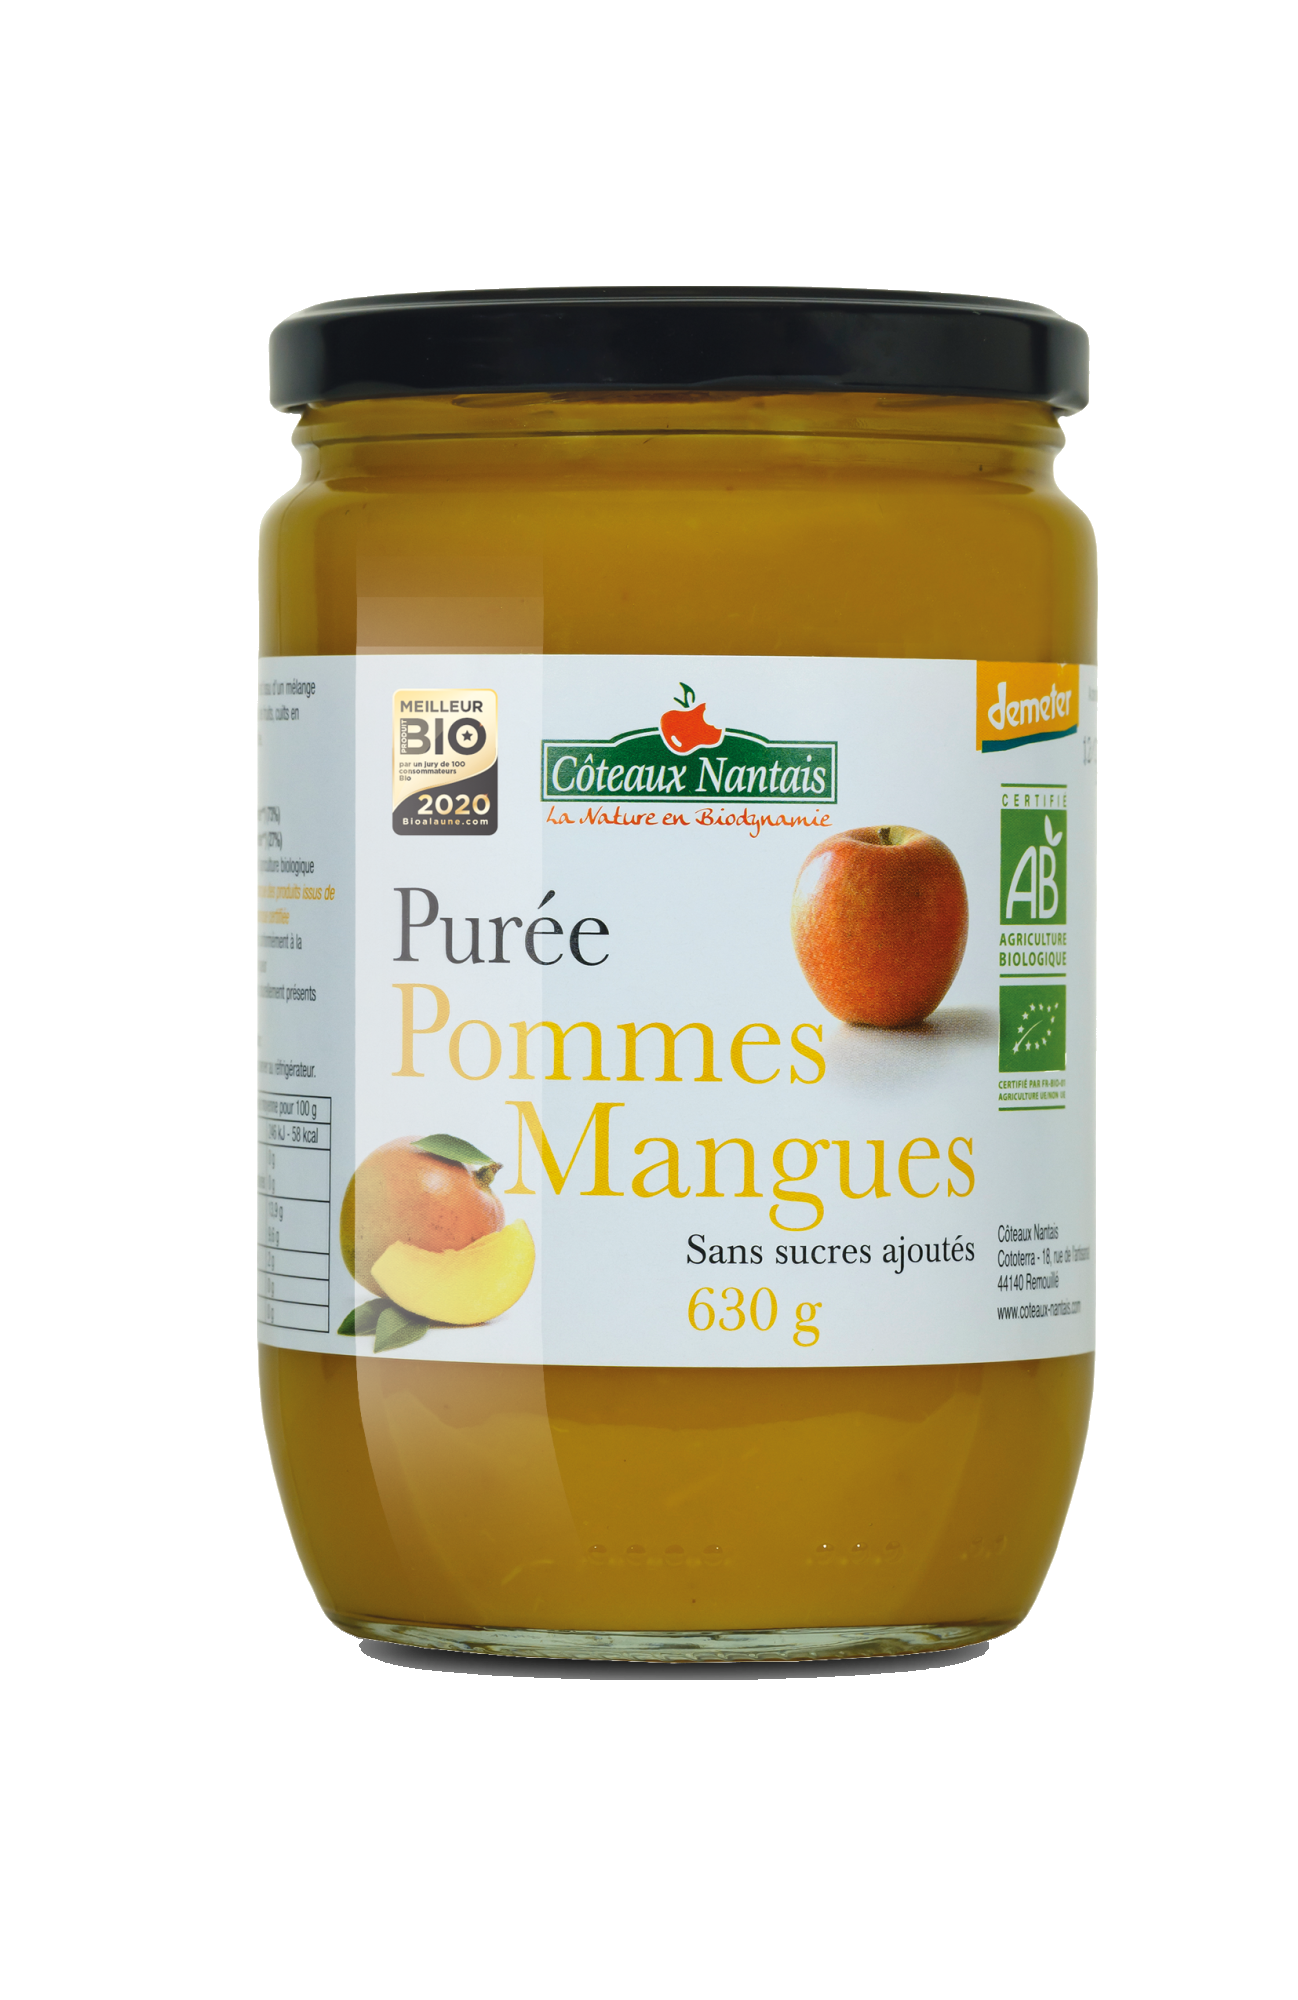 puree_pommes_mangues_630g_2020.png_site_2000.png